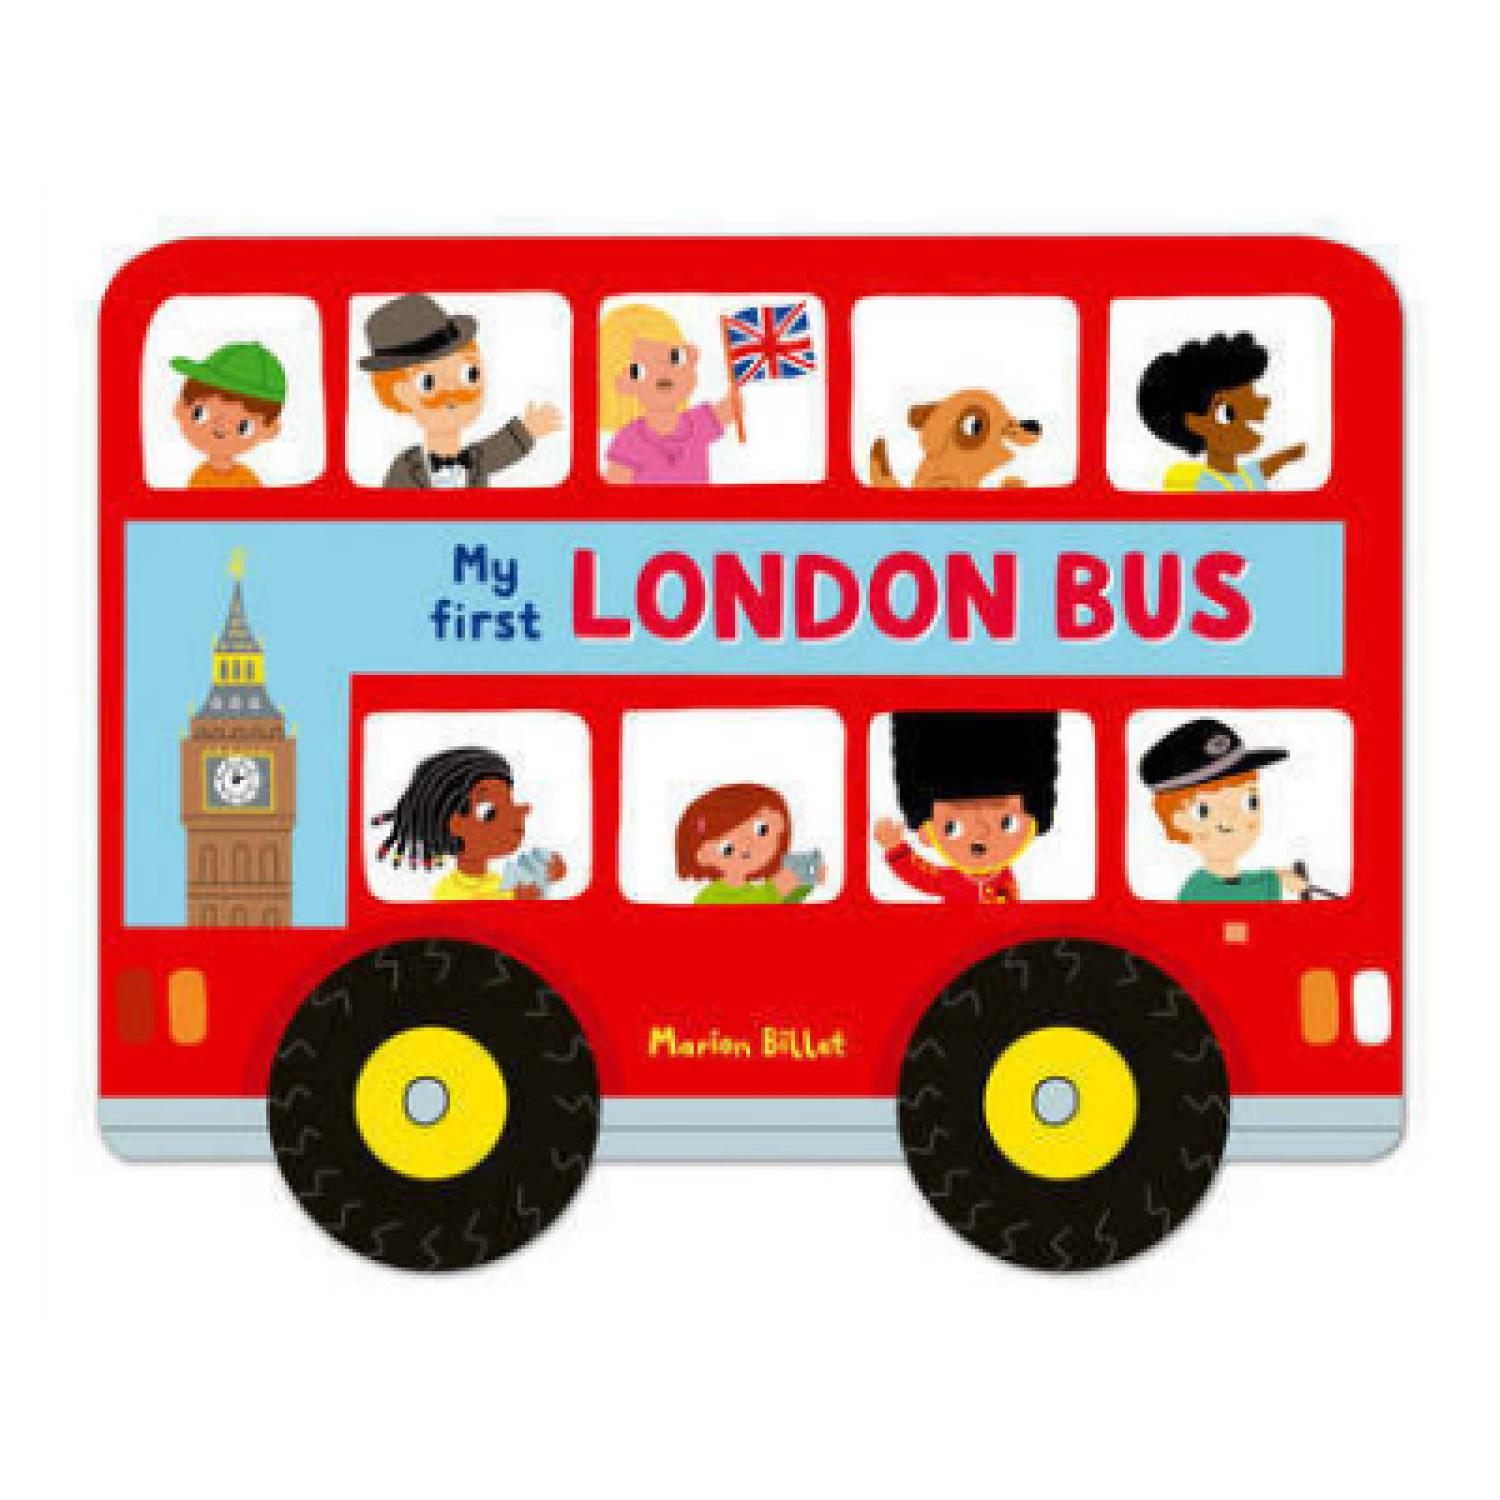 London bus images clipart clip free stock My First London Bus (Board Book) clip free stock